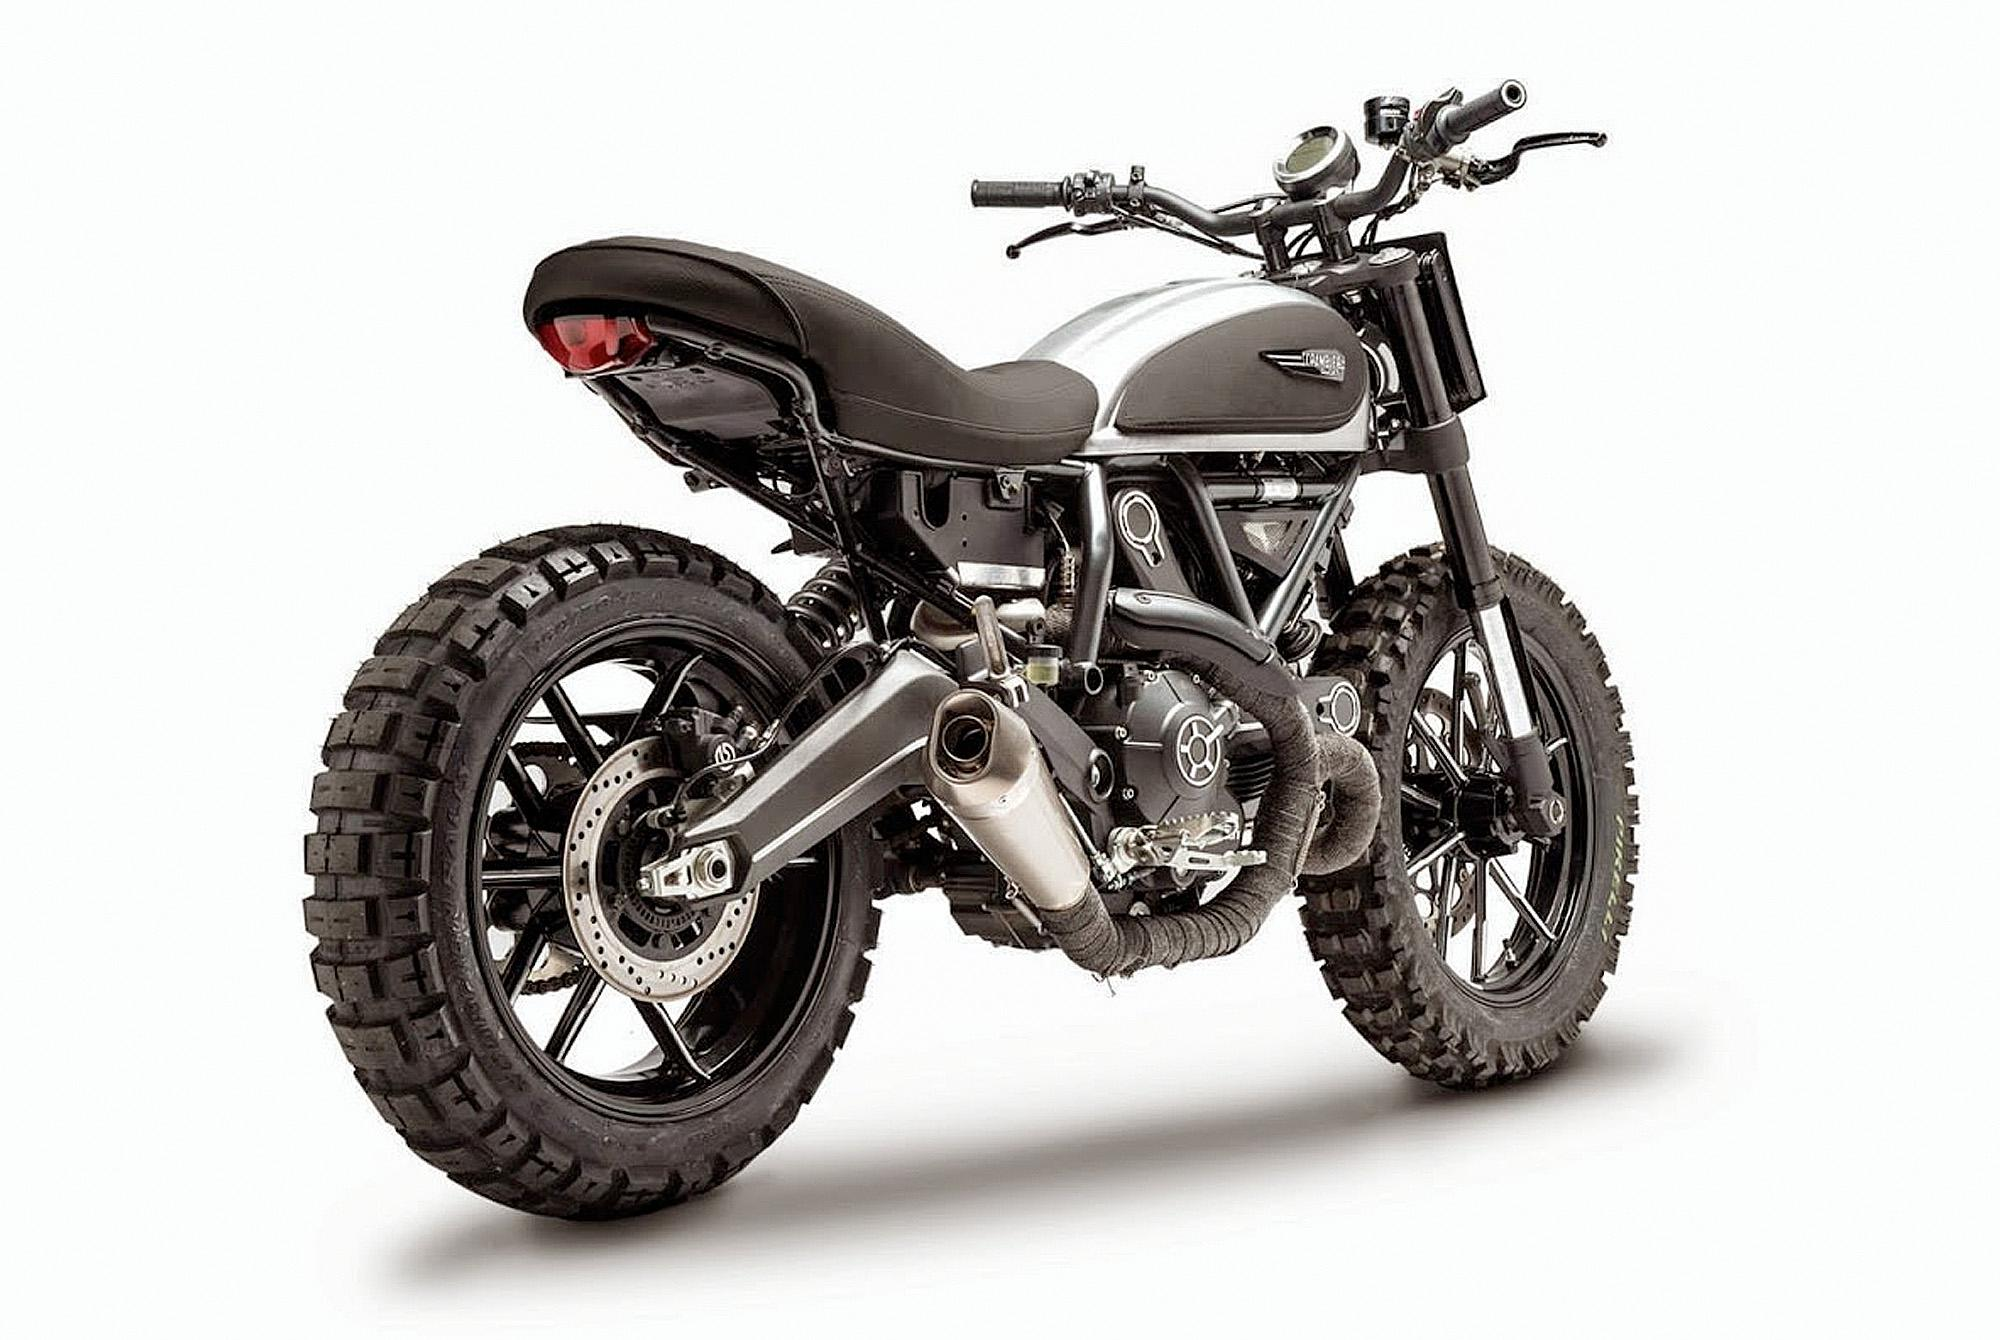 ducati scrambler rocket garage dirt tracker motorrad fotos. Black Bedroom Furniture Sets. Home Design Ideas